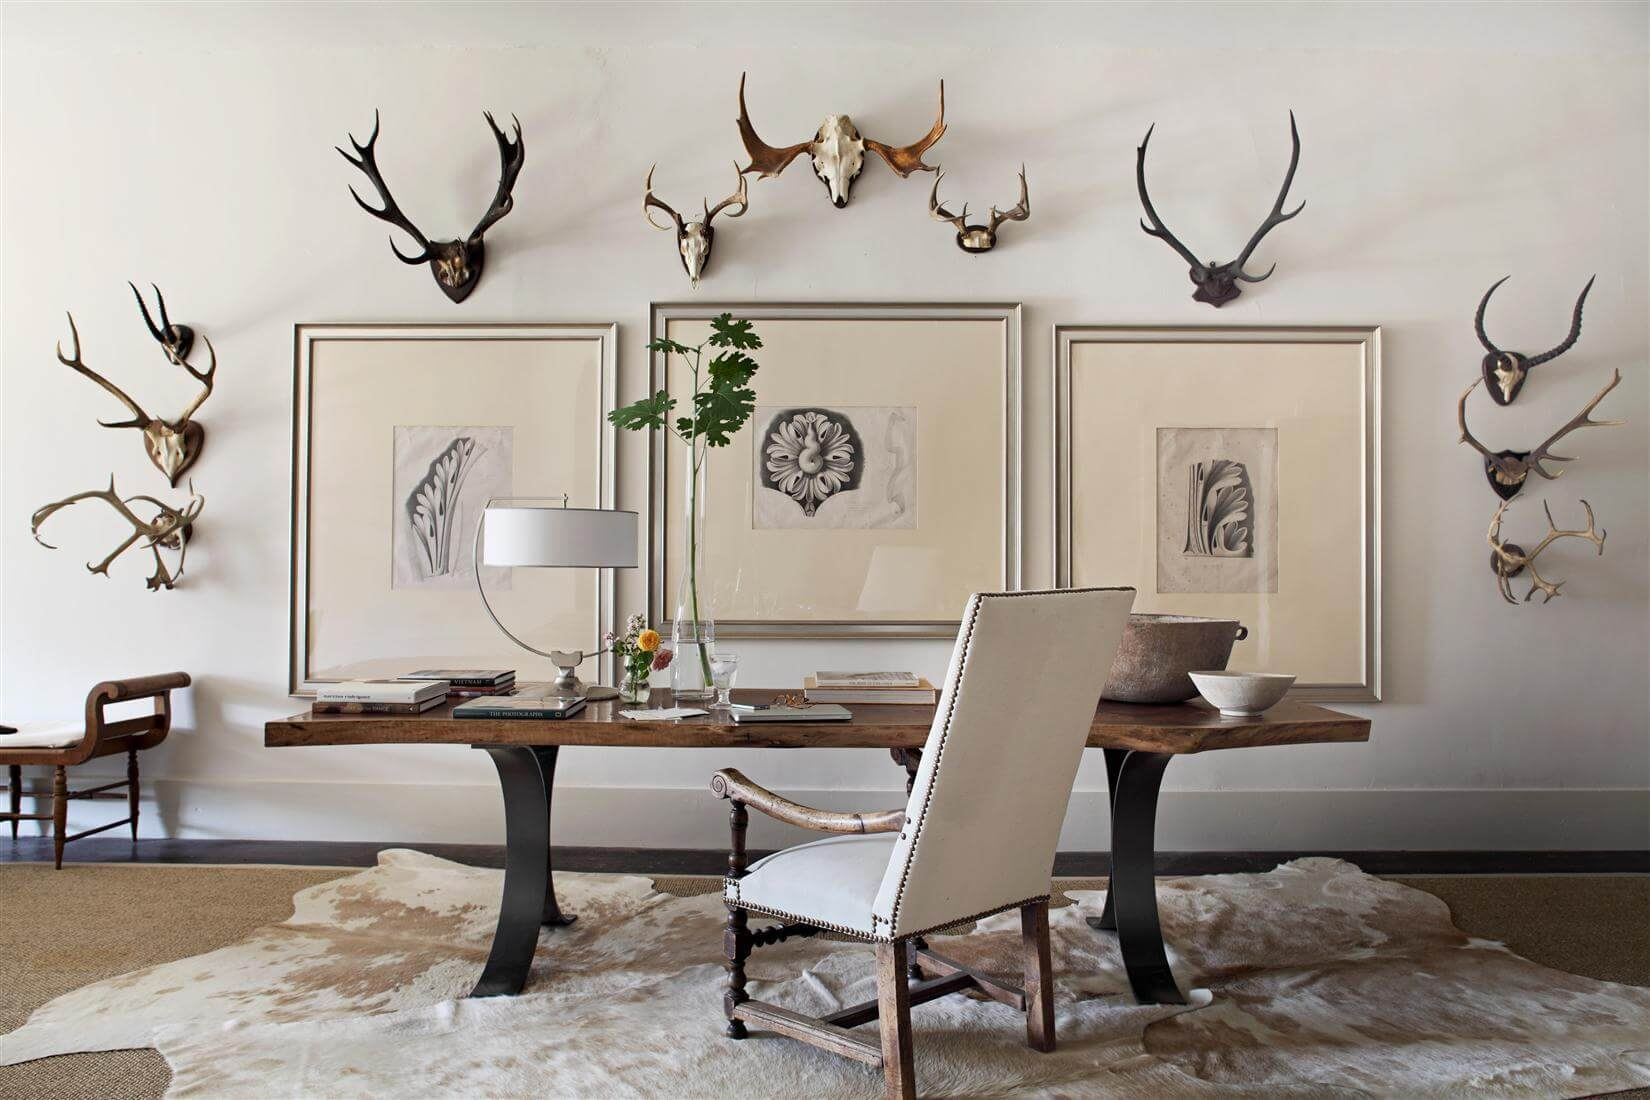 The client's own collection of vintage European antlers gets its day in the sun beside antique prints of Greek Revival plaster designs in this upstairs hallway vignette, where an 18th Century Louis XIV-style armchair flanks a custom walnut table by Michael Morrow. Image: William Abranowicz